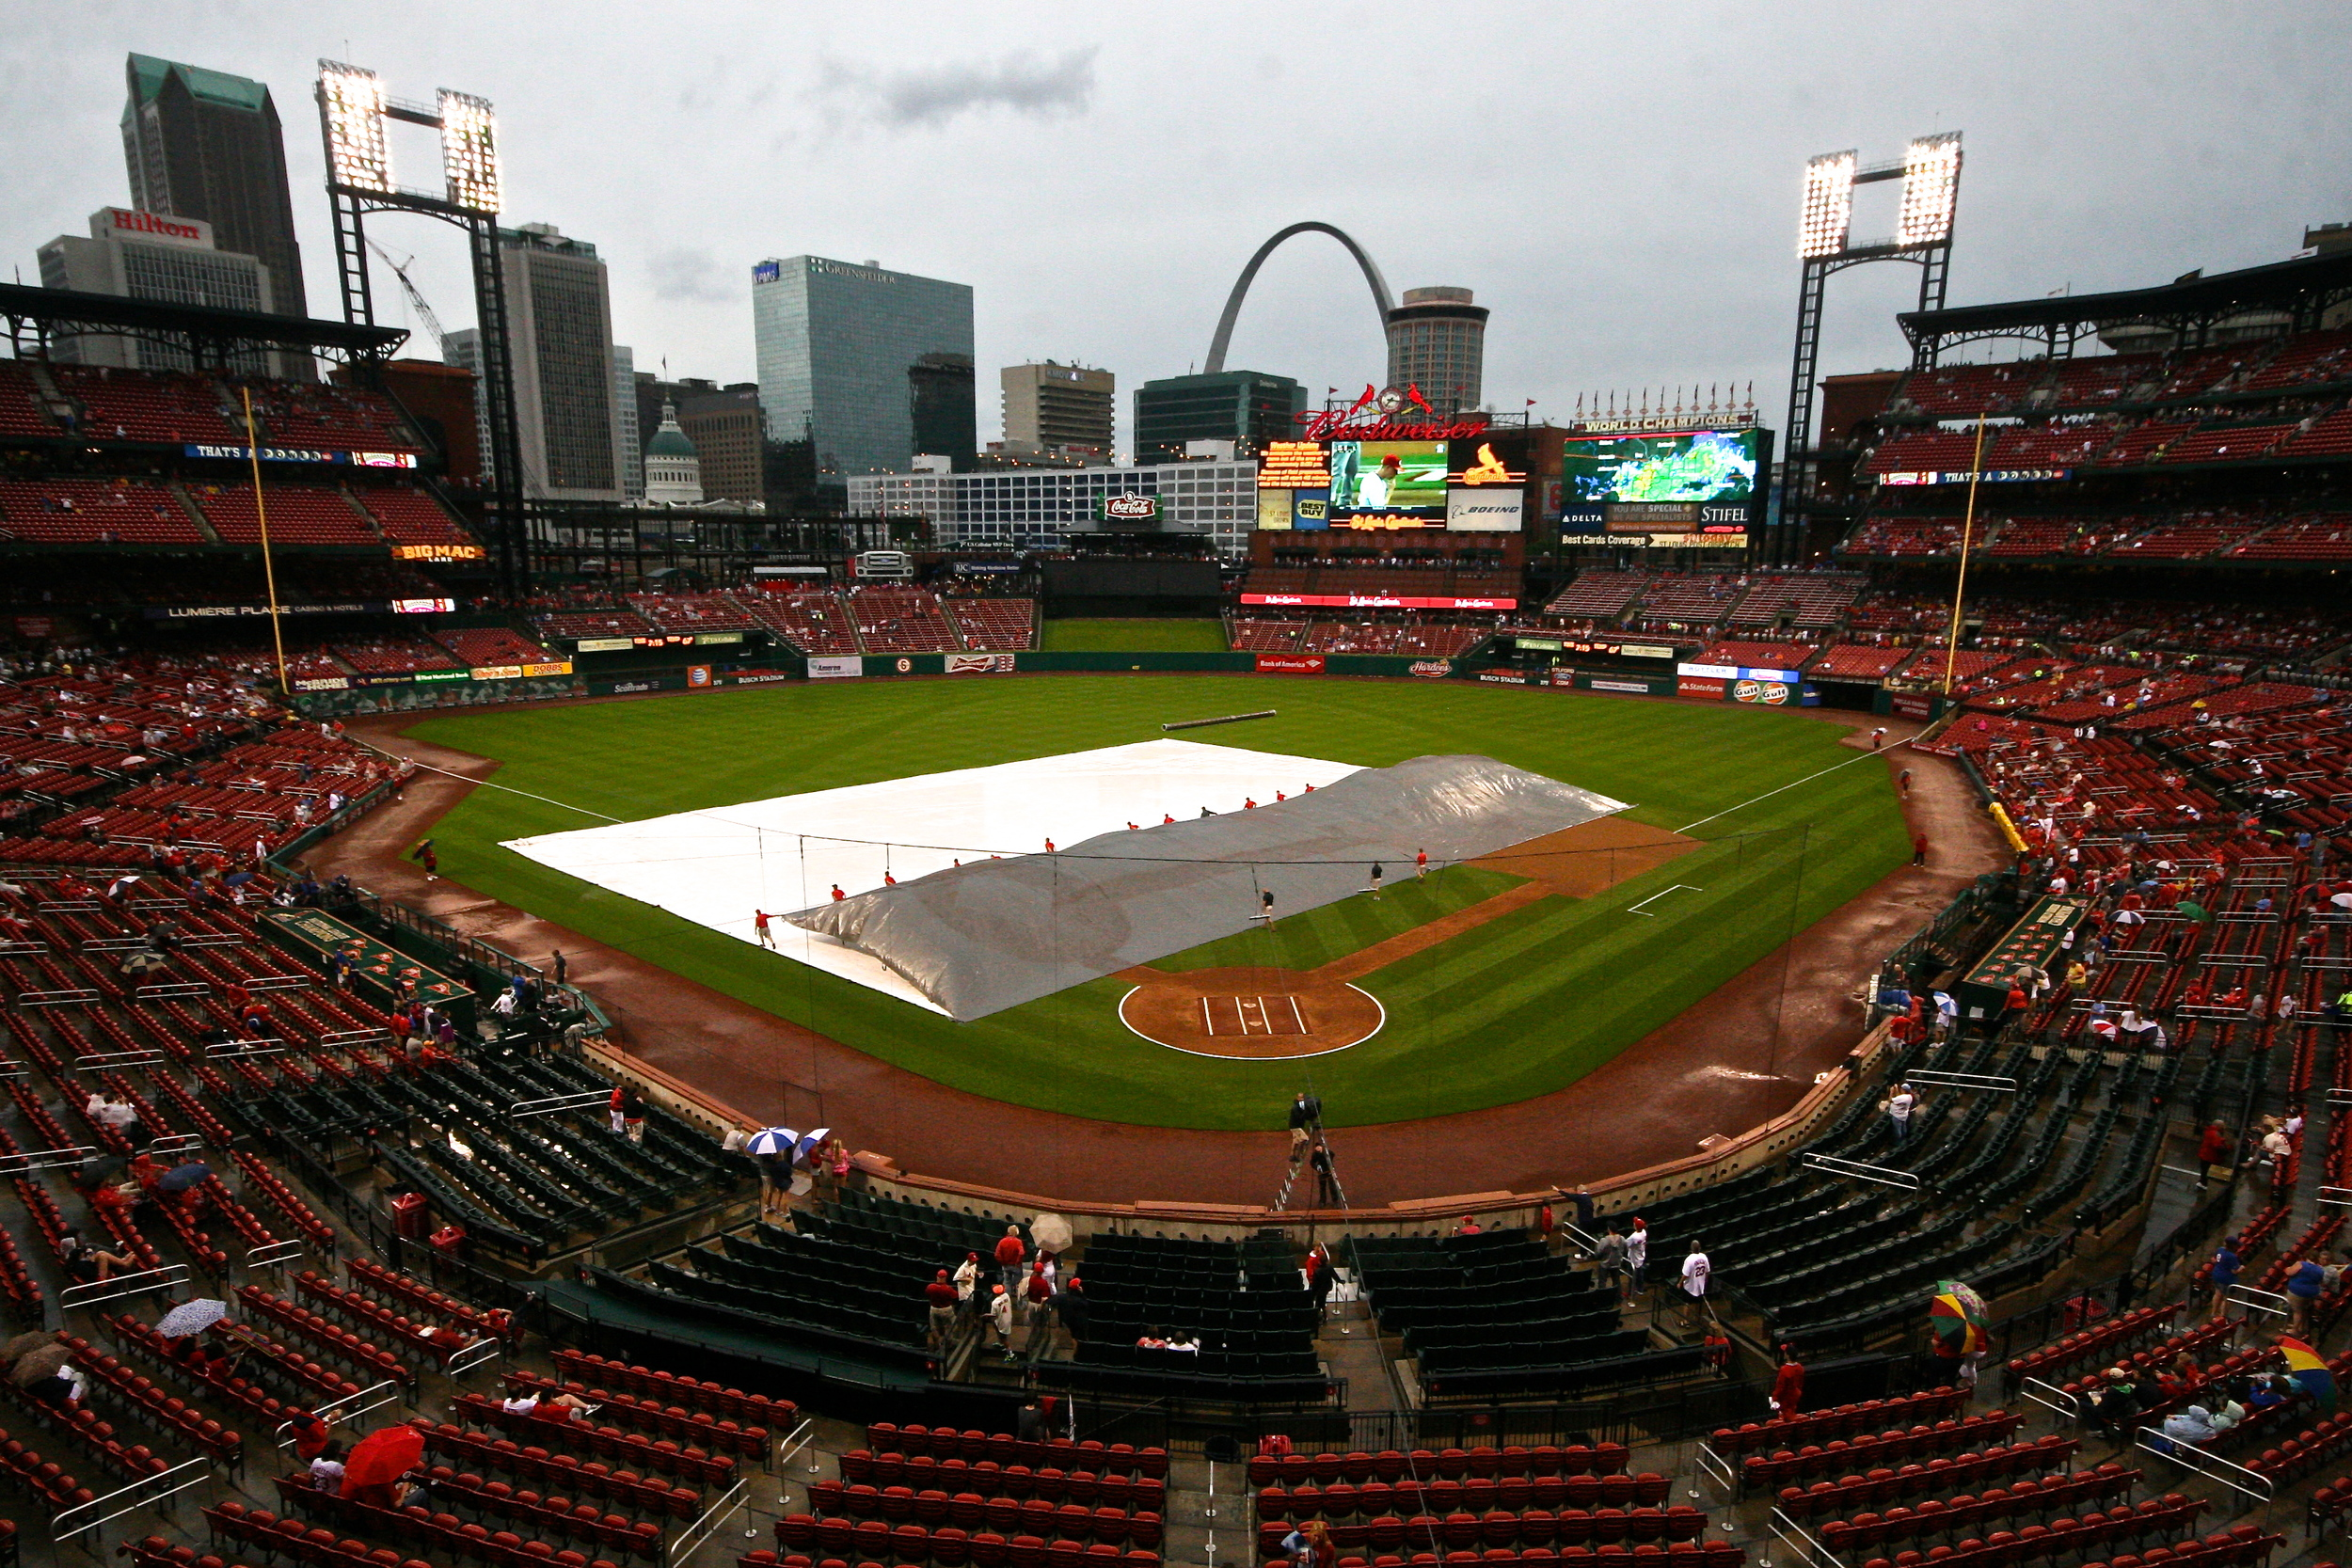 Tarp coming off the field